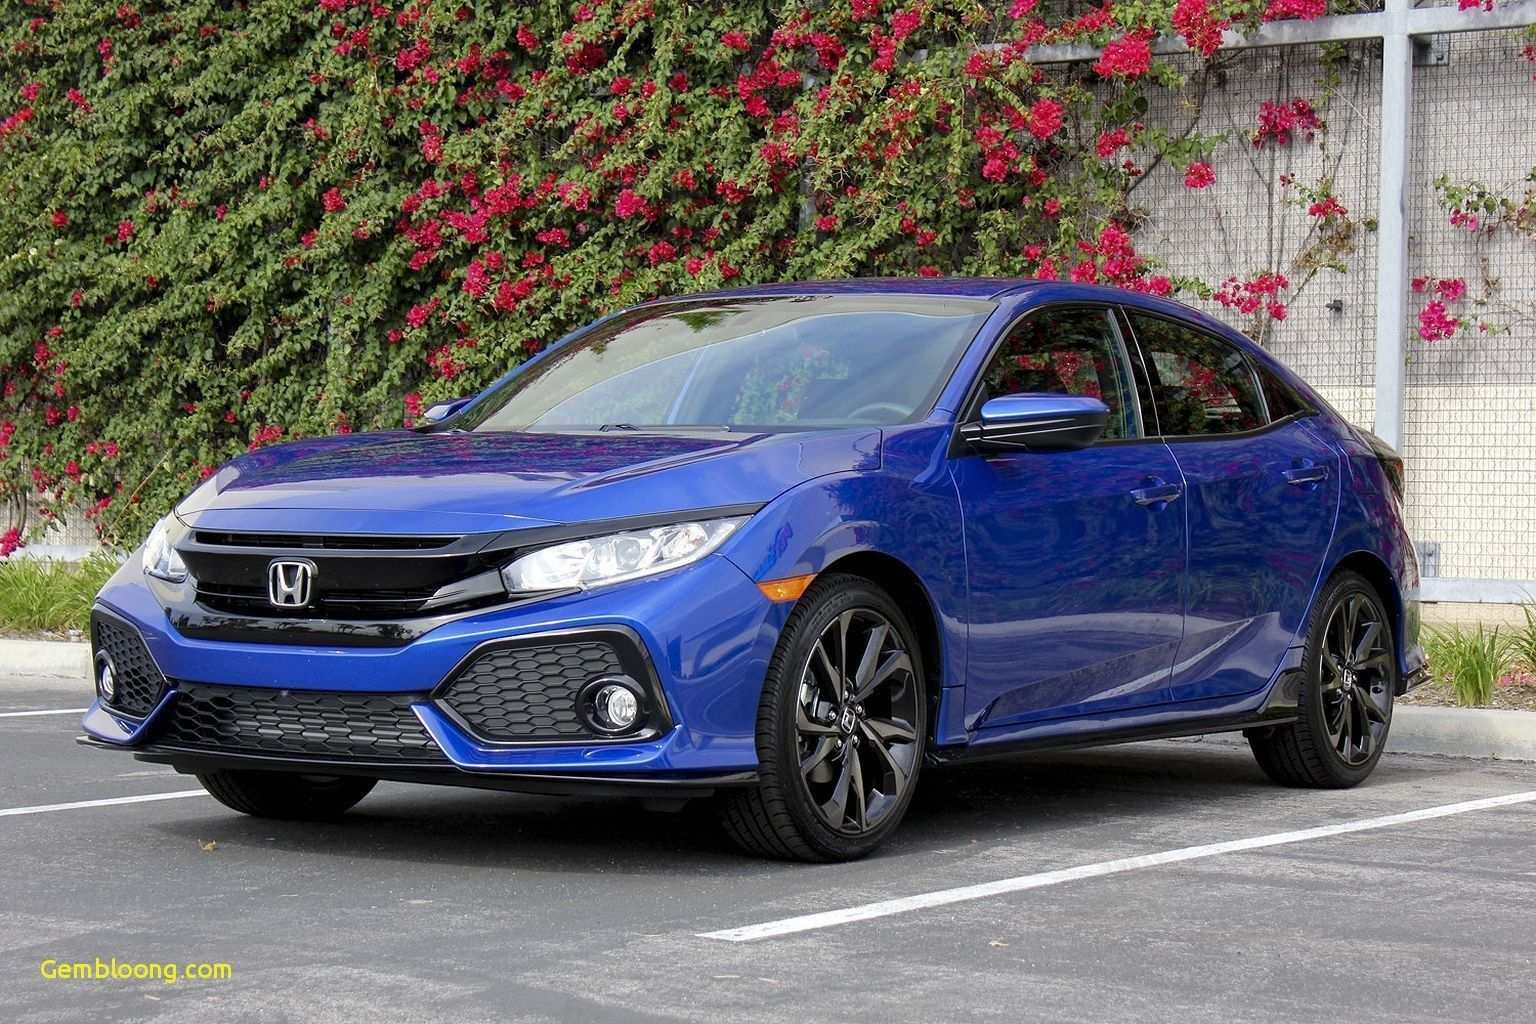 38 New 2020 Honda Civic Si Speed Test